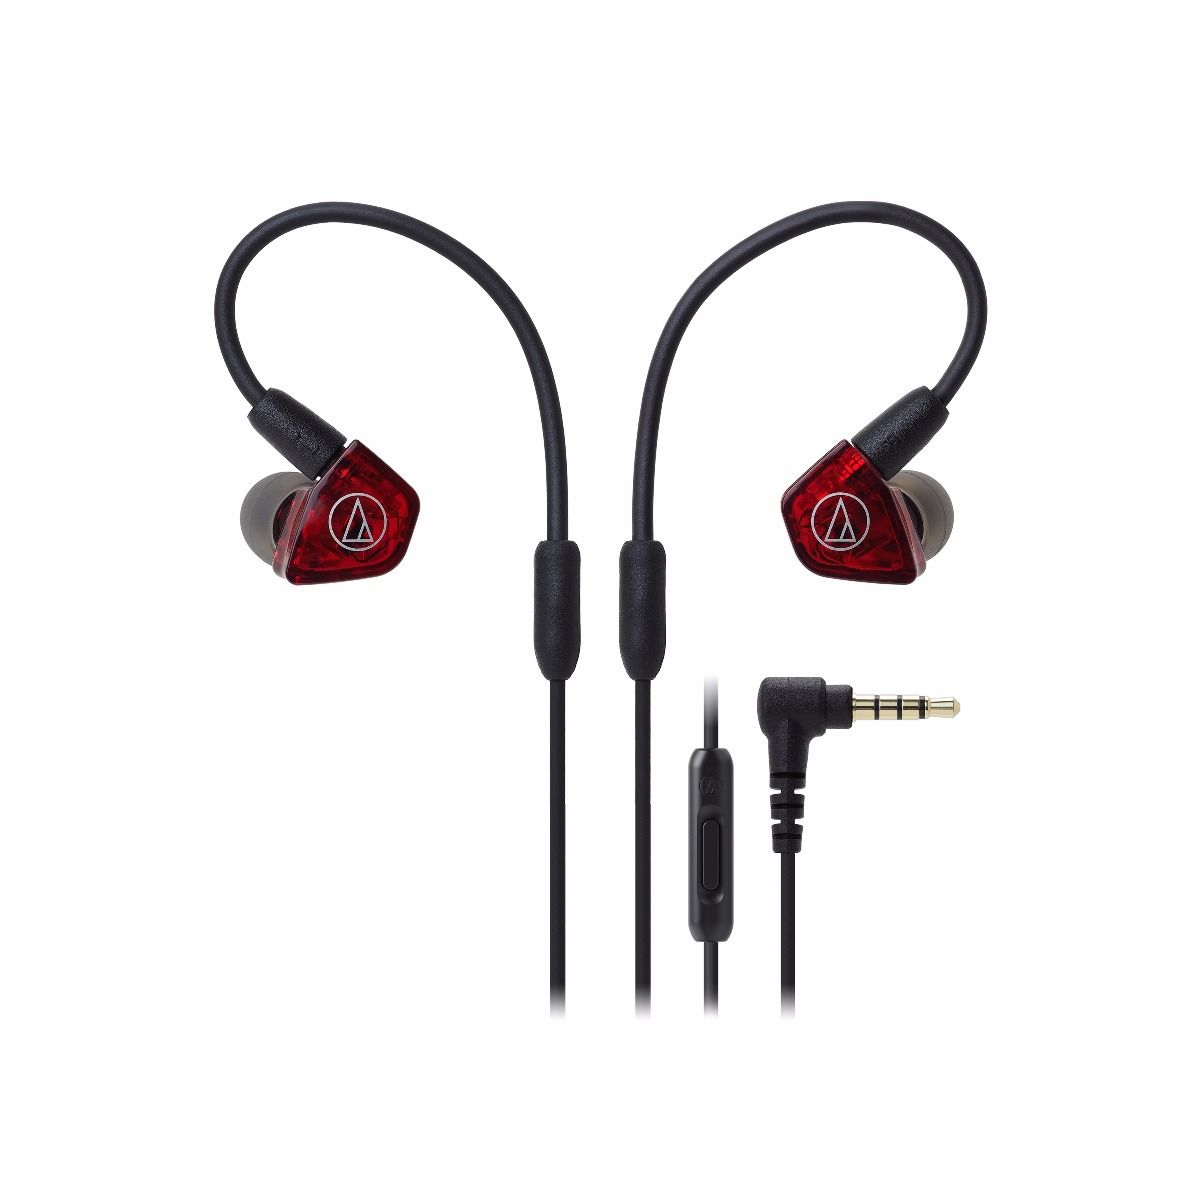 Audio-Technica LS200is Dual Balanced Armature In-Ear Headphones